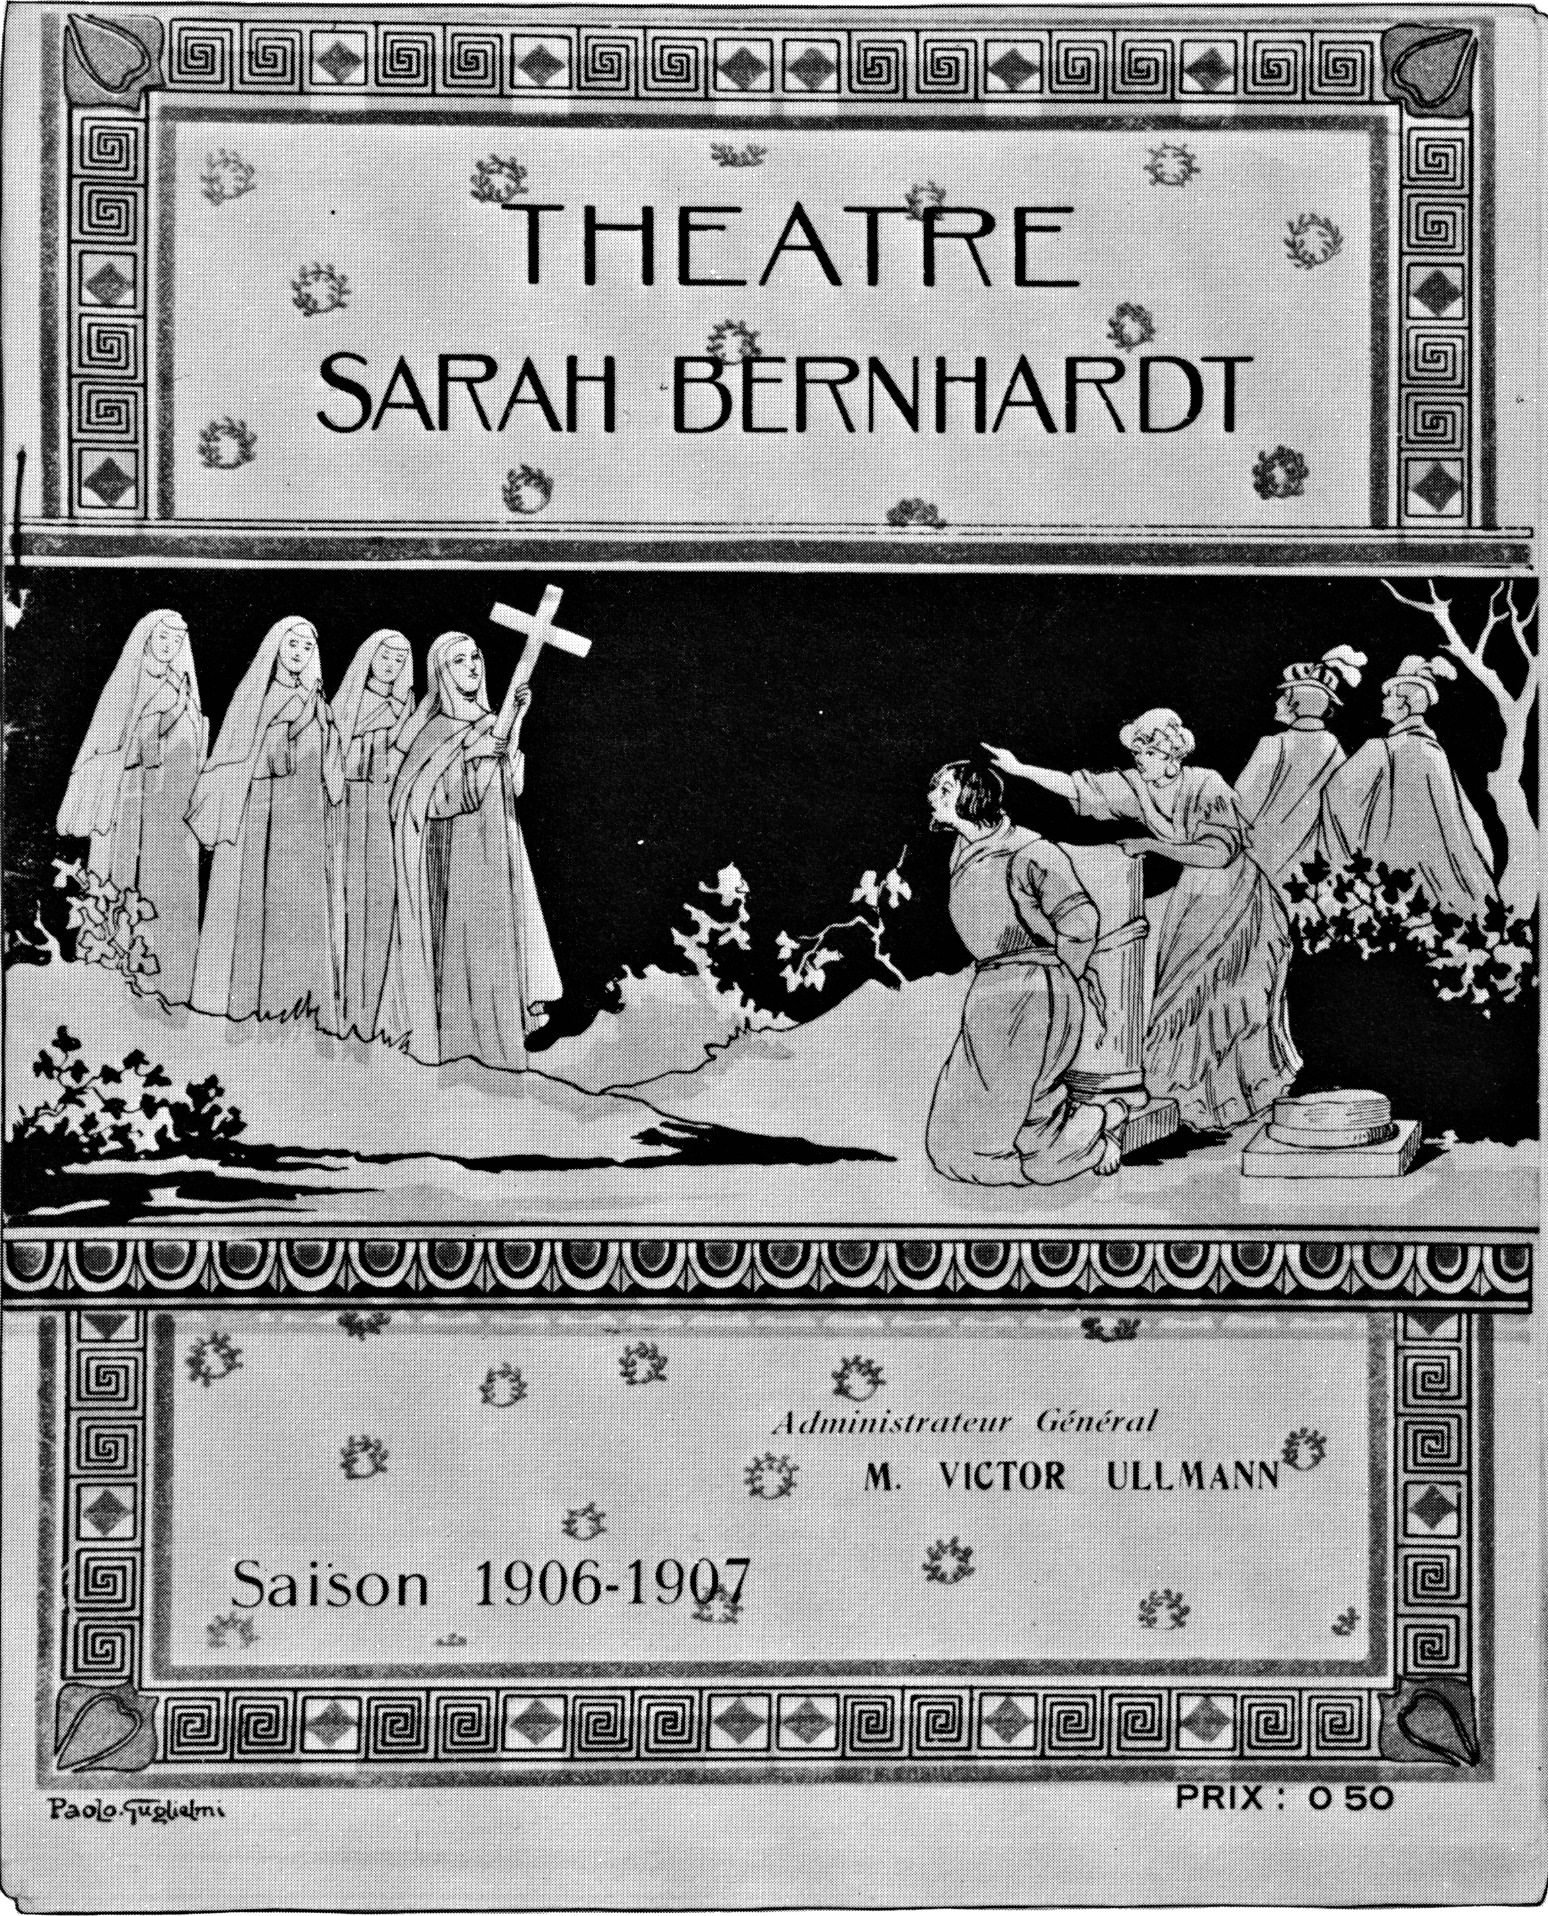 Theatre SB program 1906-07 for La Vierge d'Avila